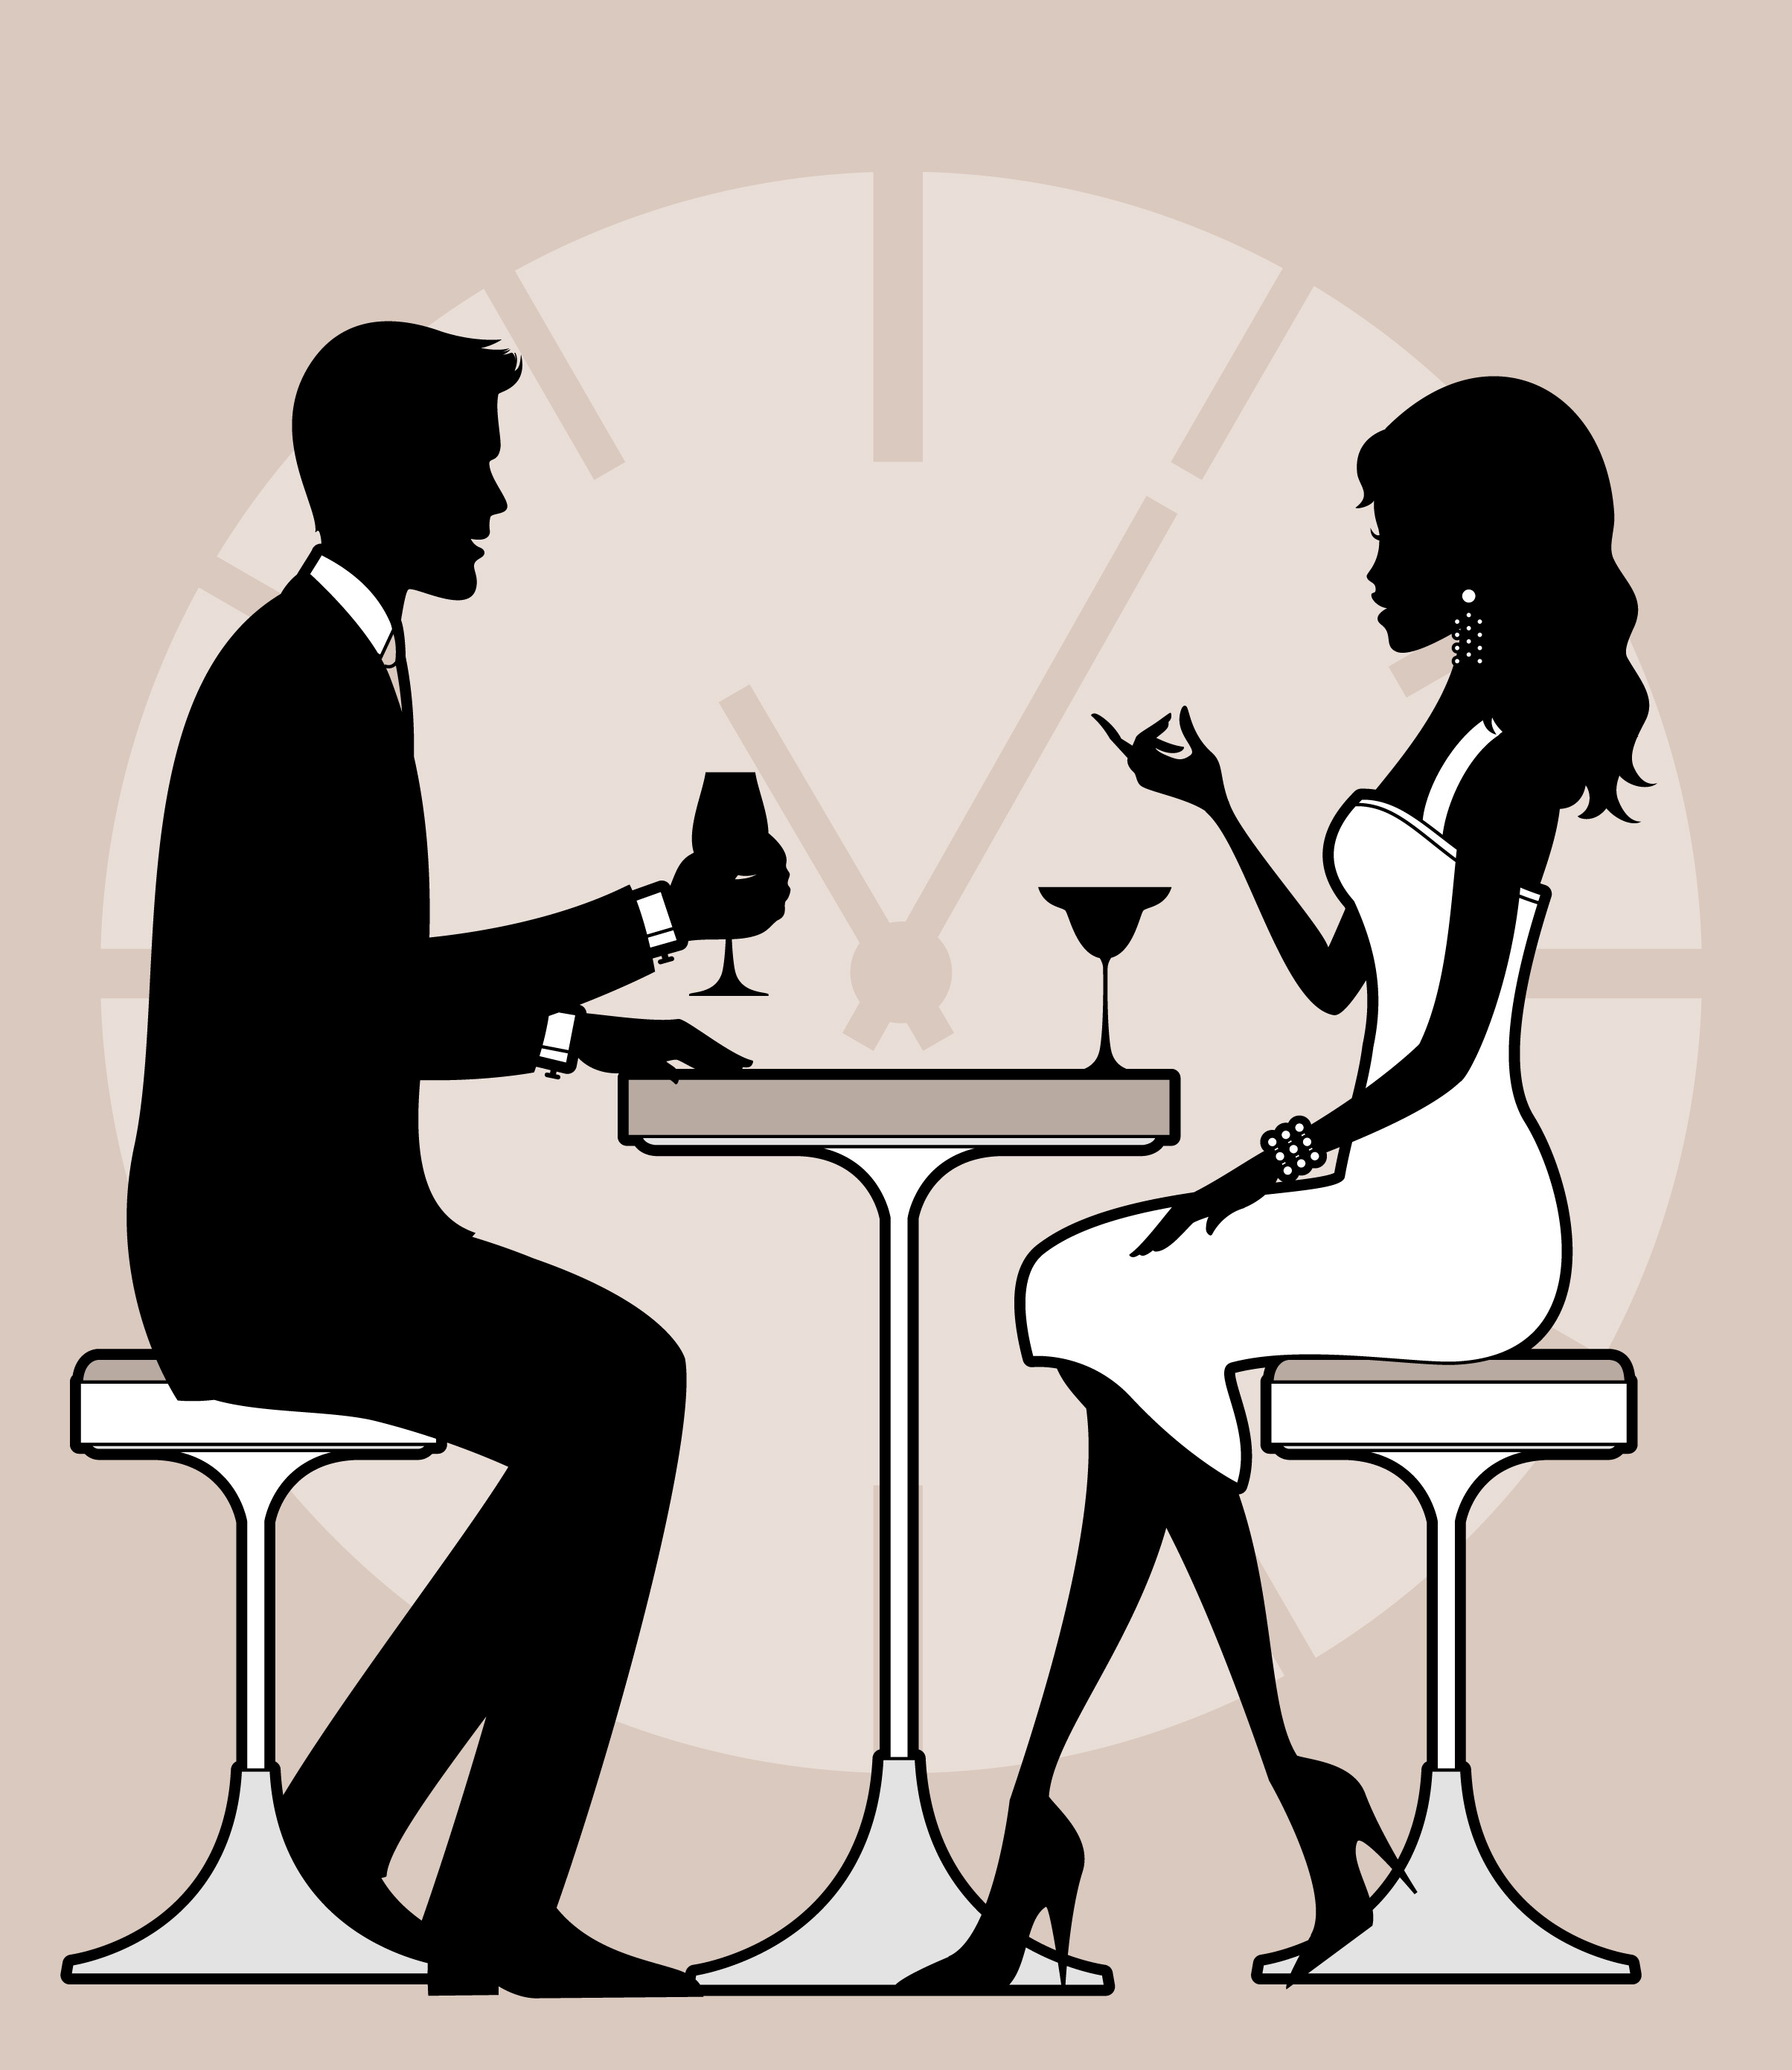 Events Calendar Georgia Georgia Events Calendar Event Calendar Georgia State Parks Swipe Right Night A Speed Dating Event The